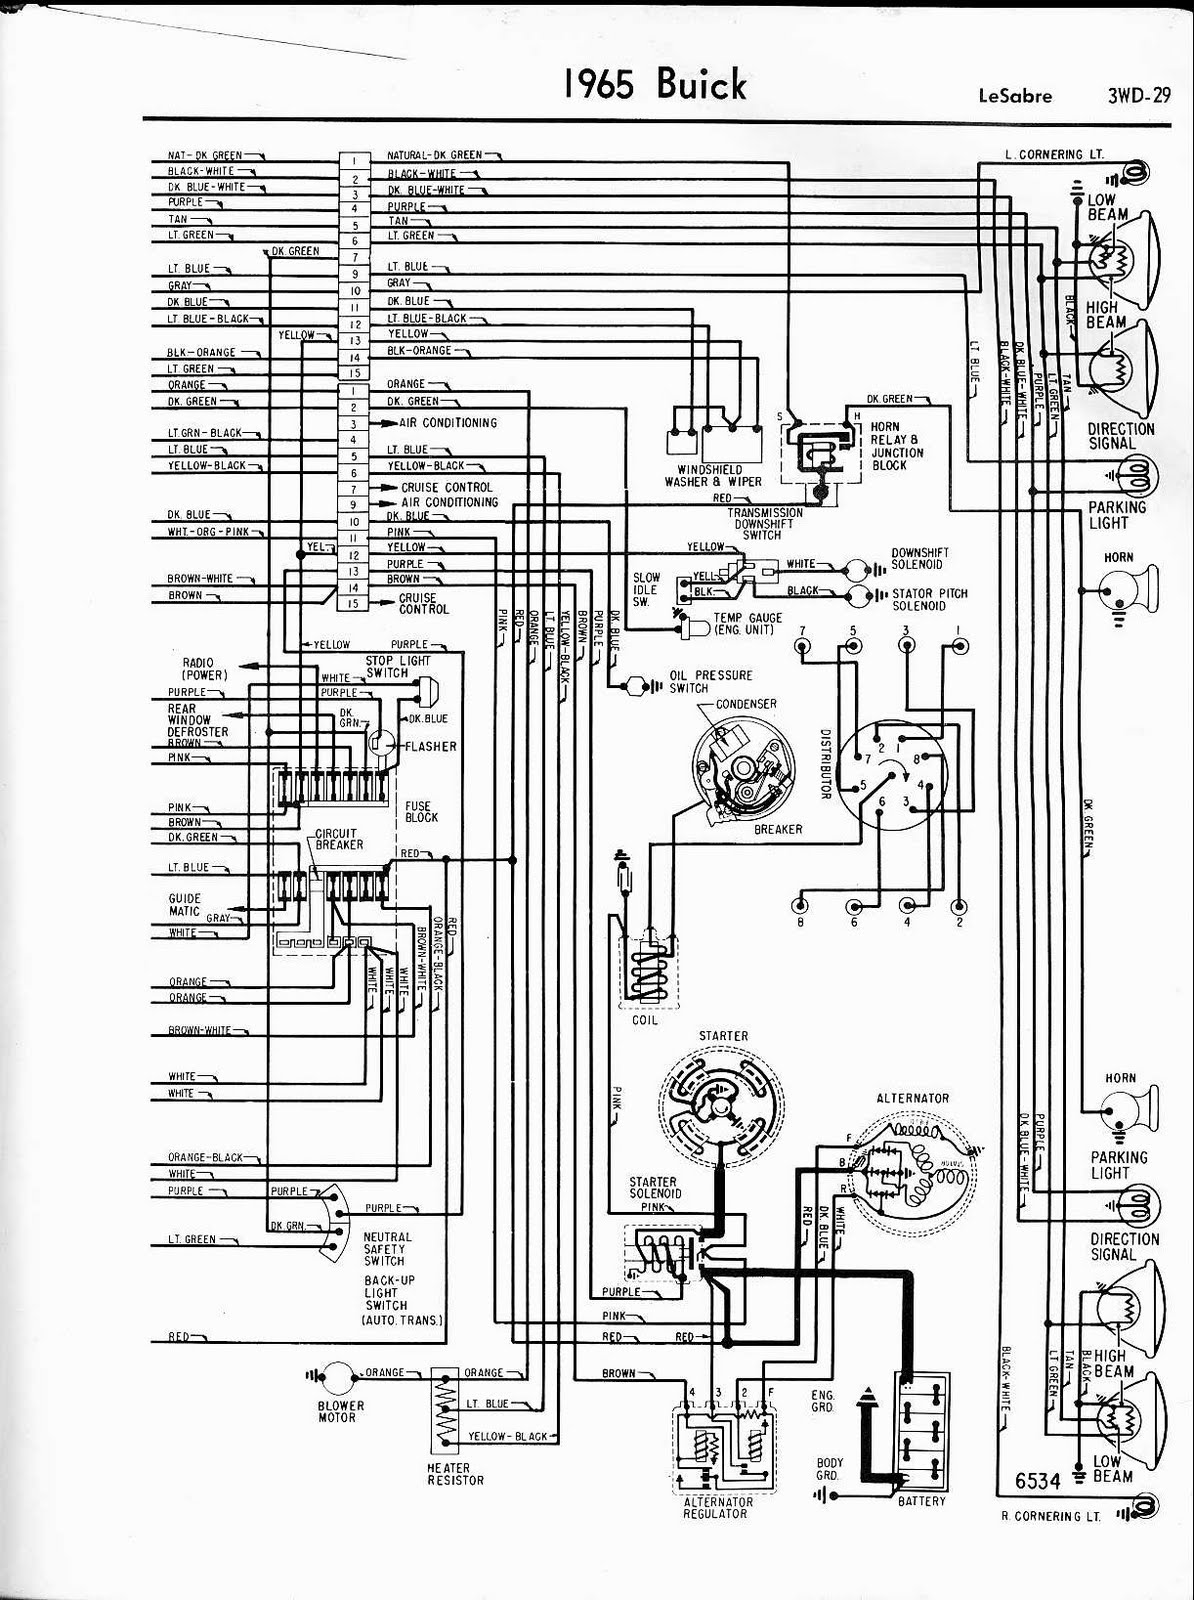 more 133 additionally File Single Cylinder T Head engine  Autocar Handbook  13th ed  1935 in addition Ford 302 Engine Parts Diagram Crossover Pipe further Mgb Wiring Diagram in addition 1965 Chevy Truck Steering Column Diagram. on 1965 mustang thermostat replacement